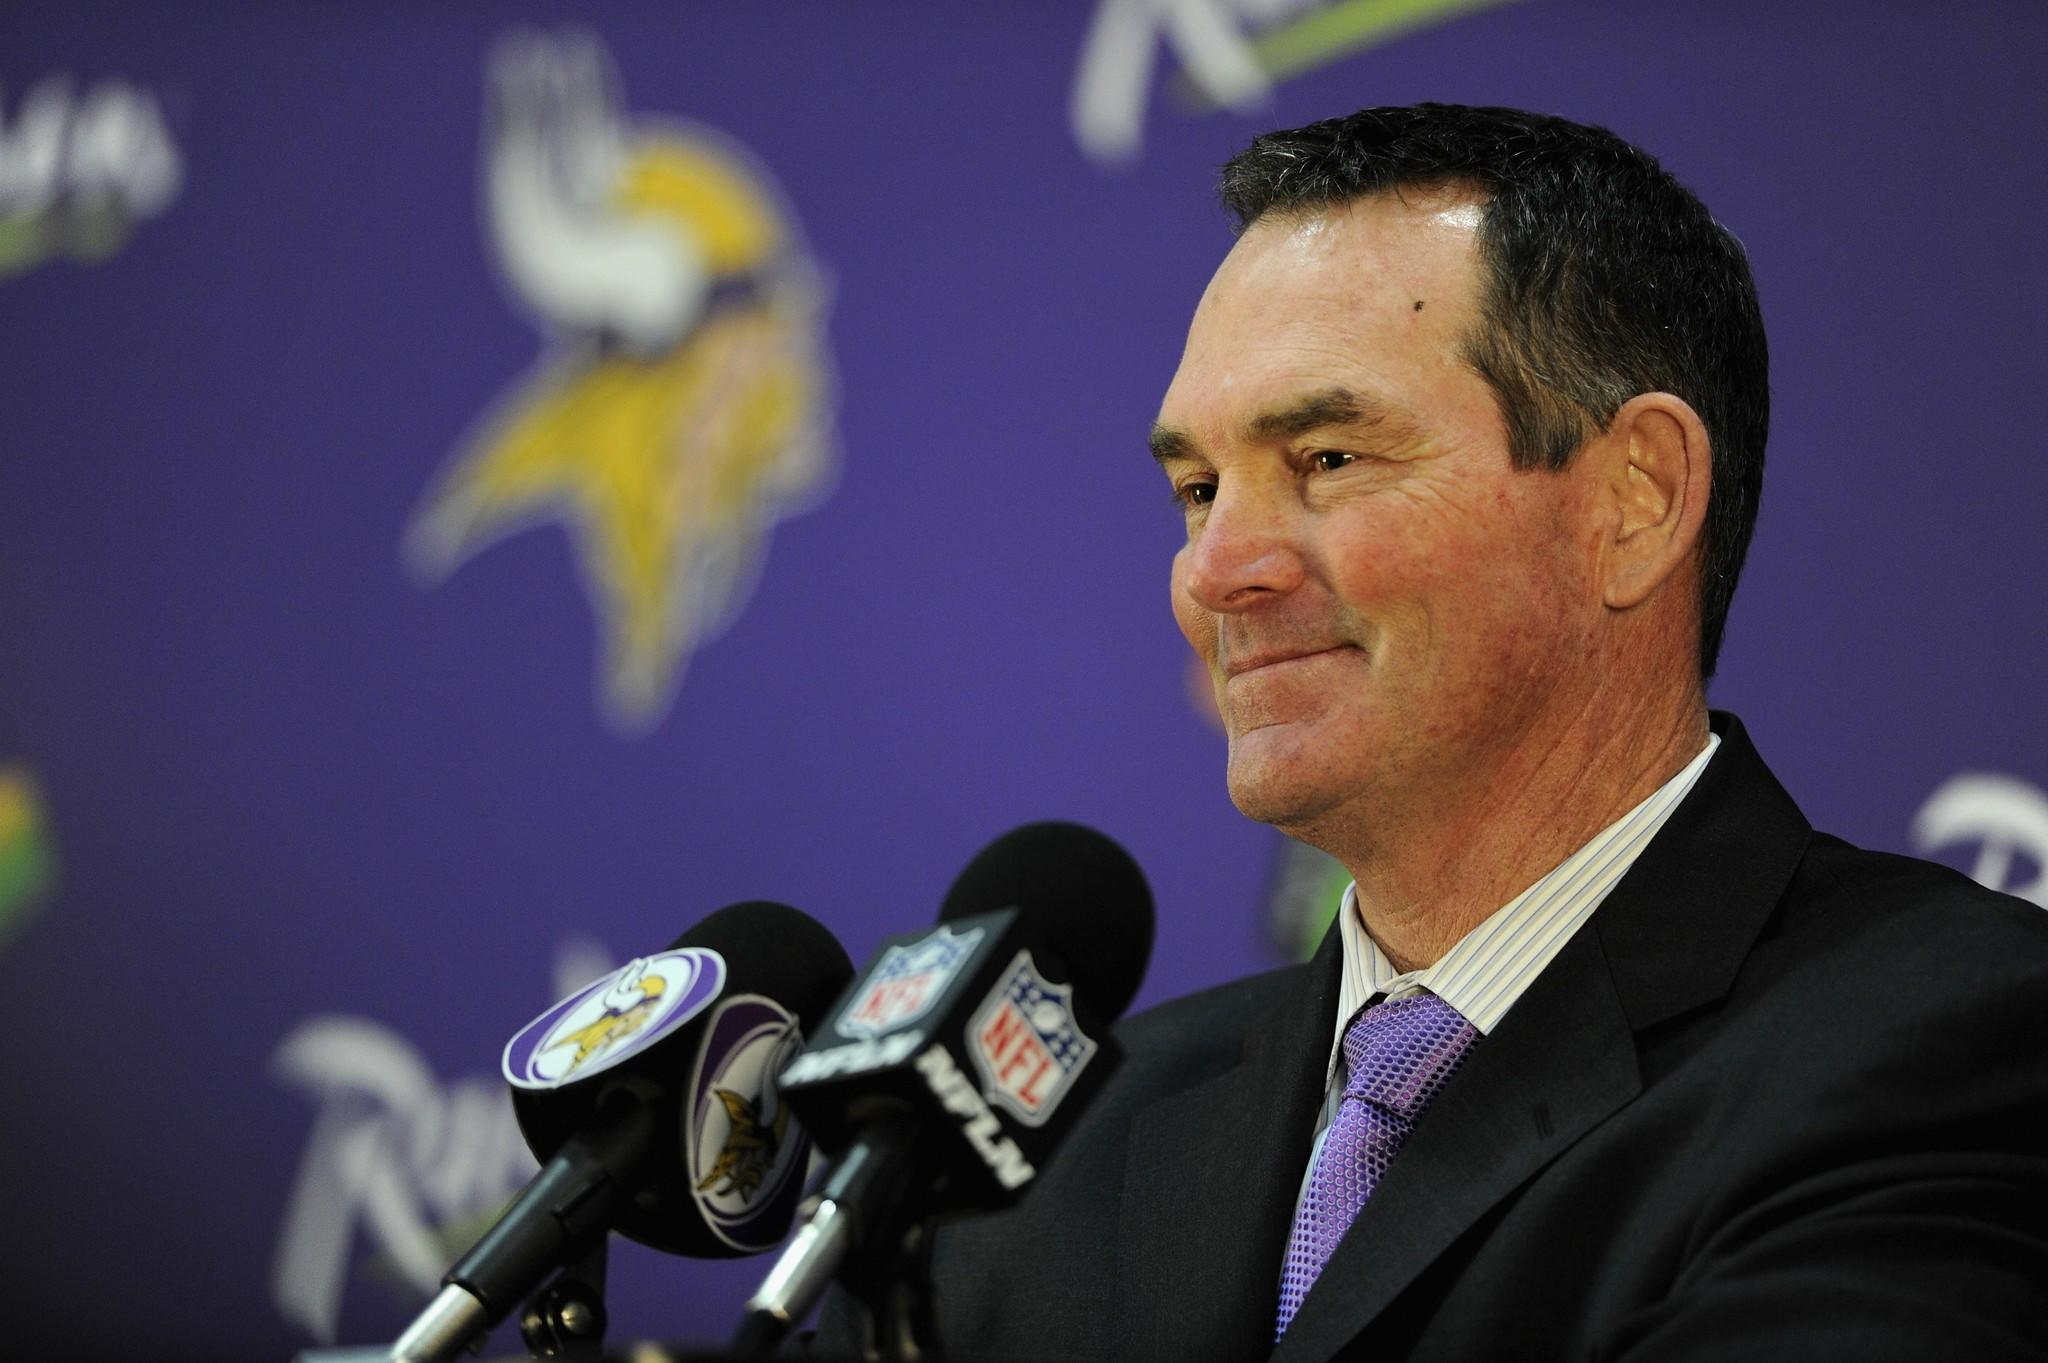 Mike Zimmer of the Minnesota Vikings speaks to the media after being introduced as the new head coach.